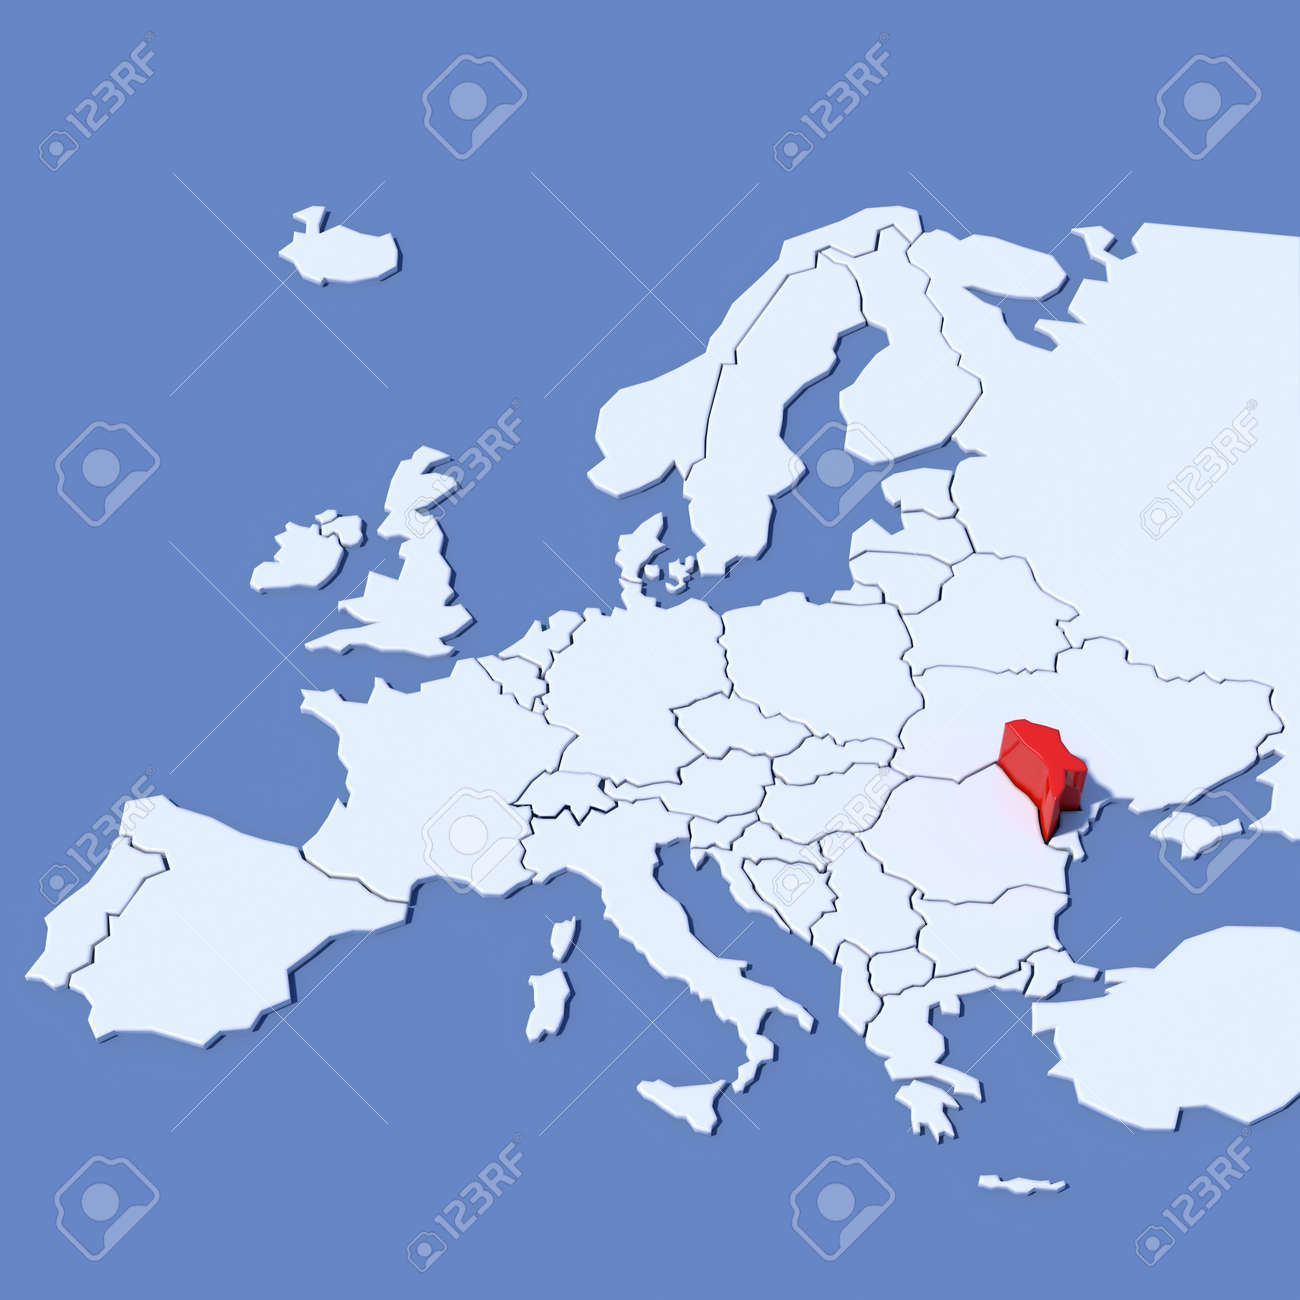 3d Map Of Europe With Indication Moldova Stock Photo Picture And